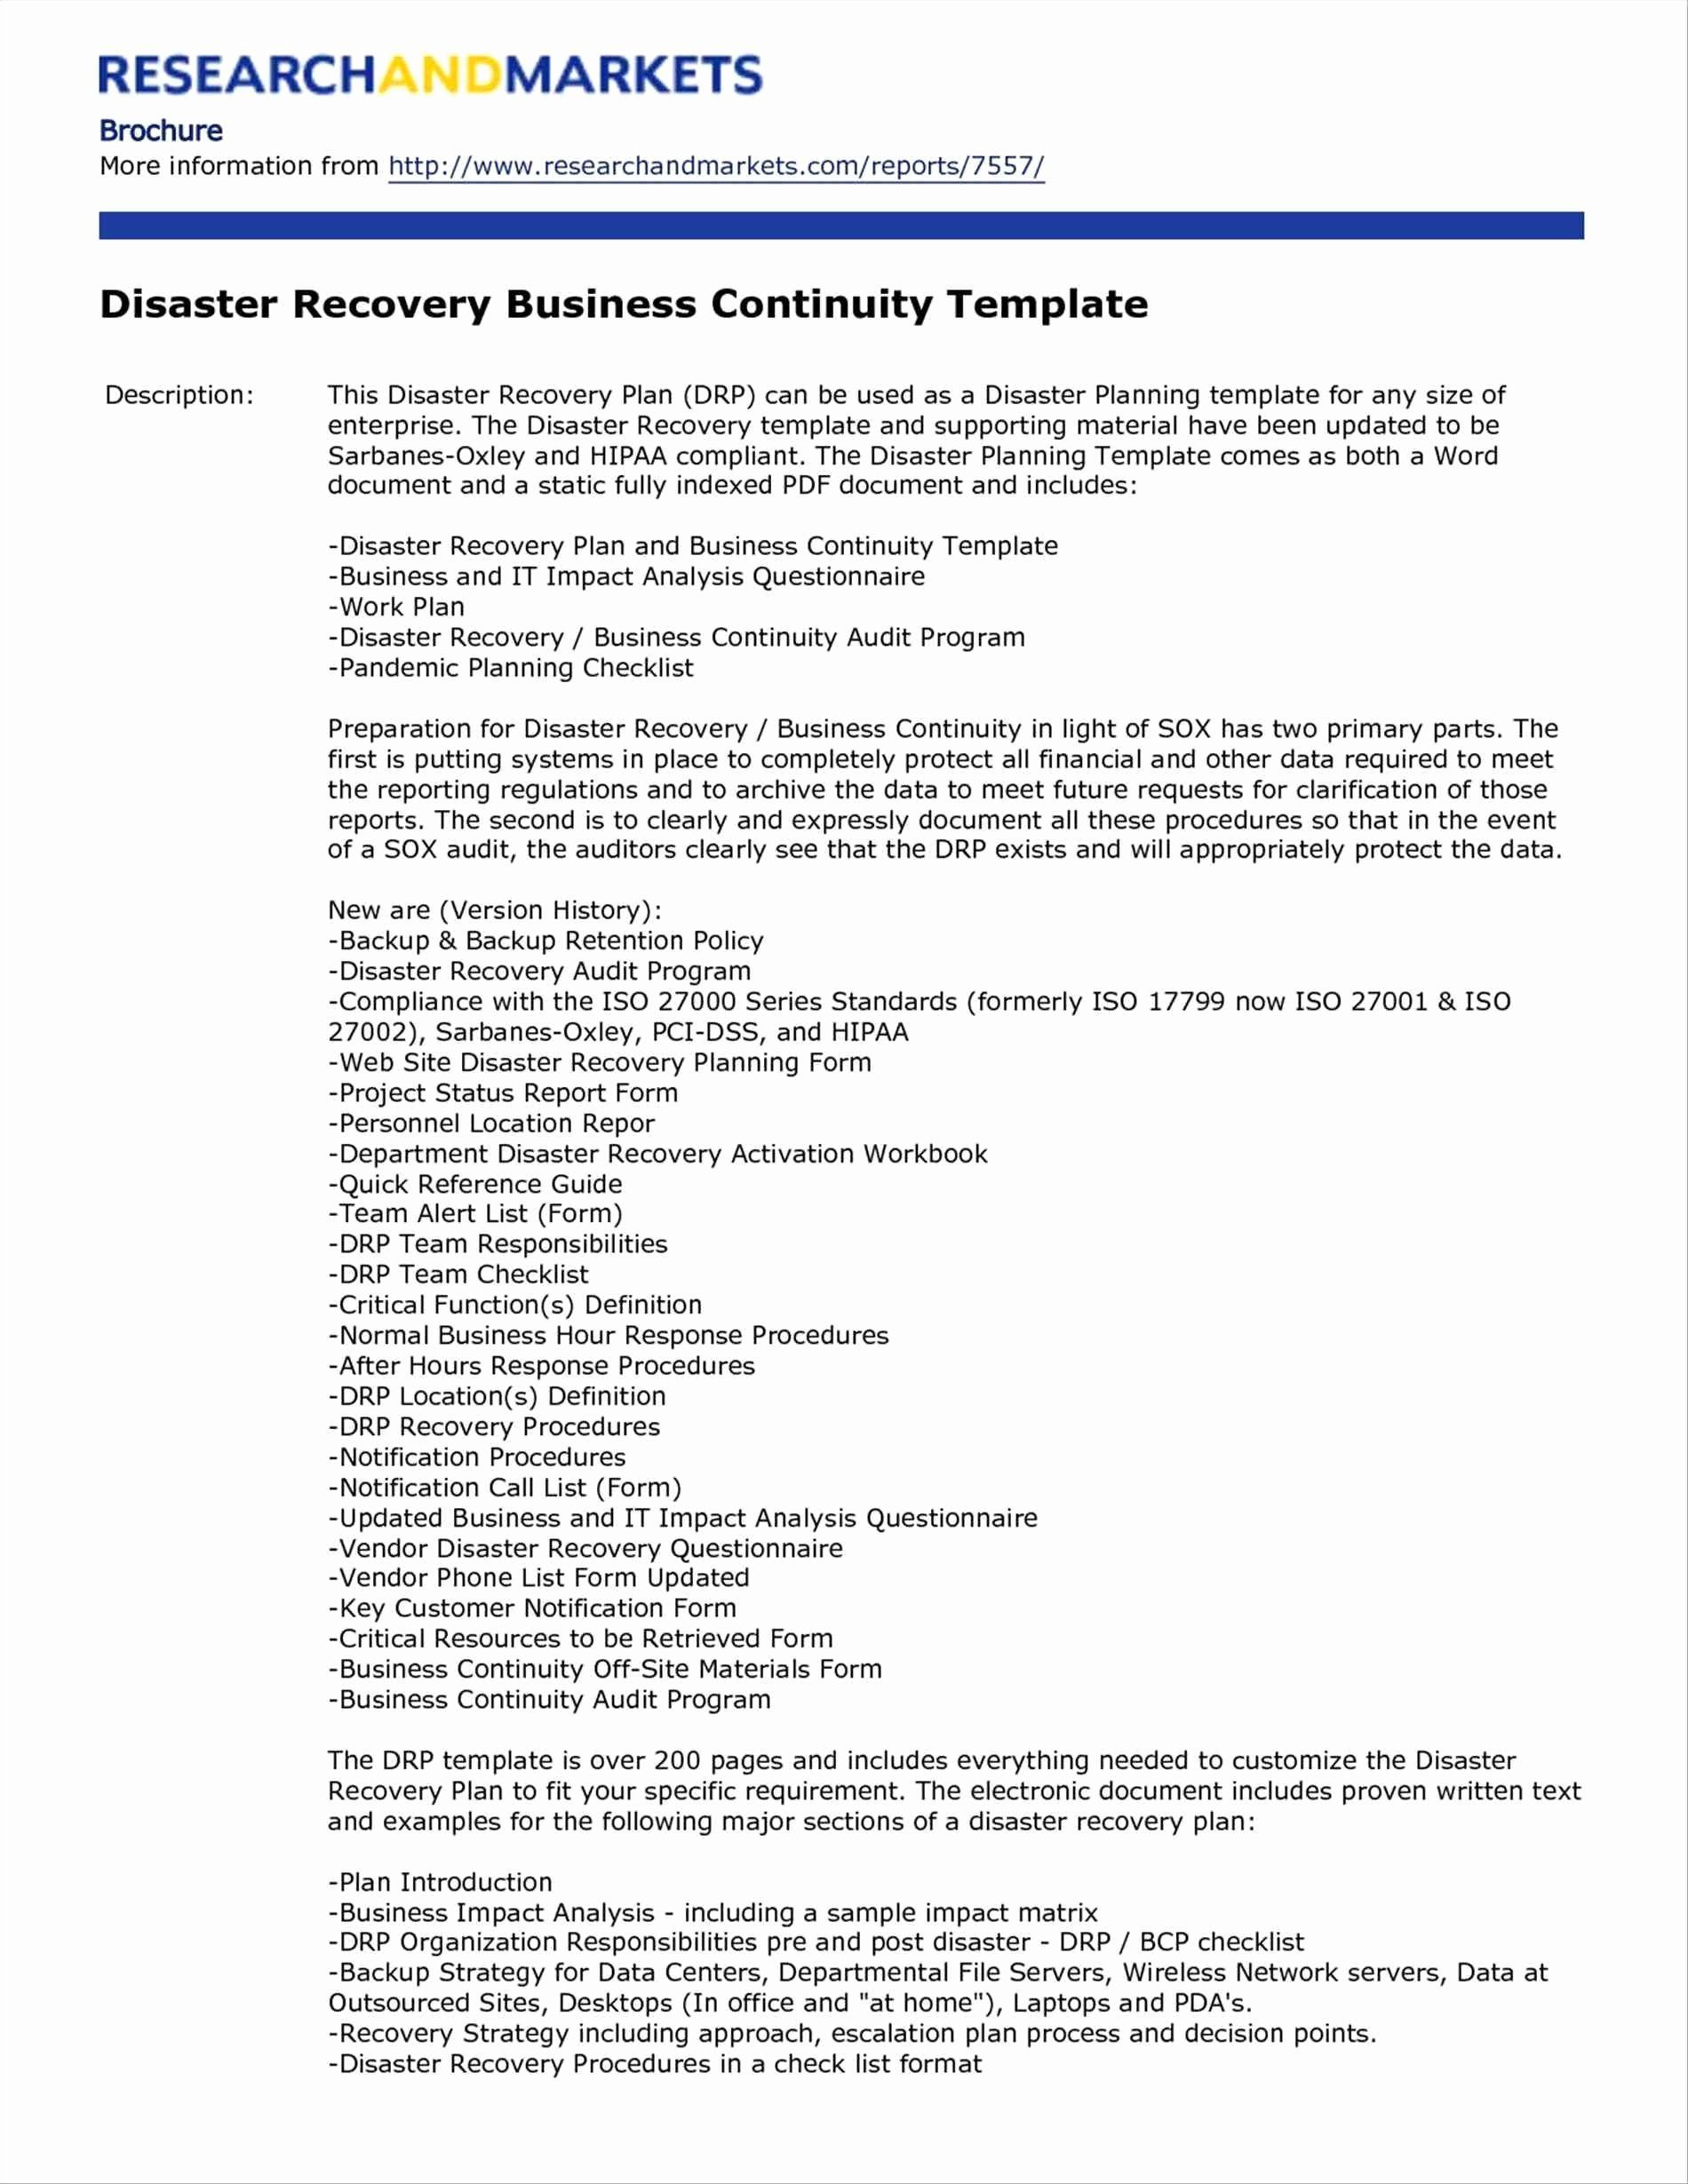 Simple Disaster Recovery Plan Template Best Of Disaster Recovery Plan Template Pdf Free Business Continuity Planning Business Continuity Business Plan Template